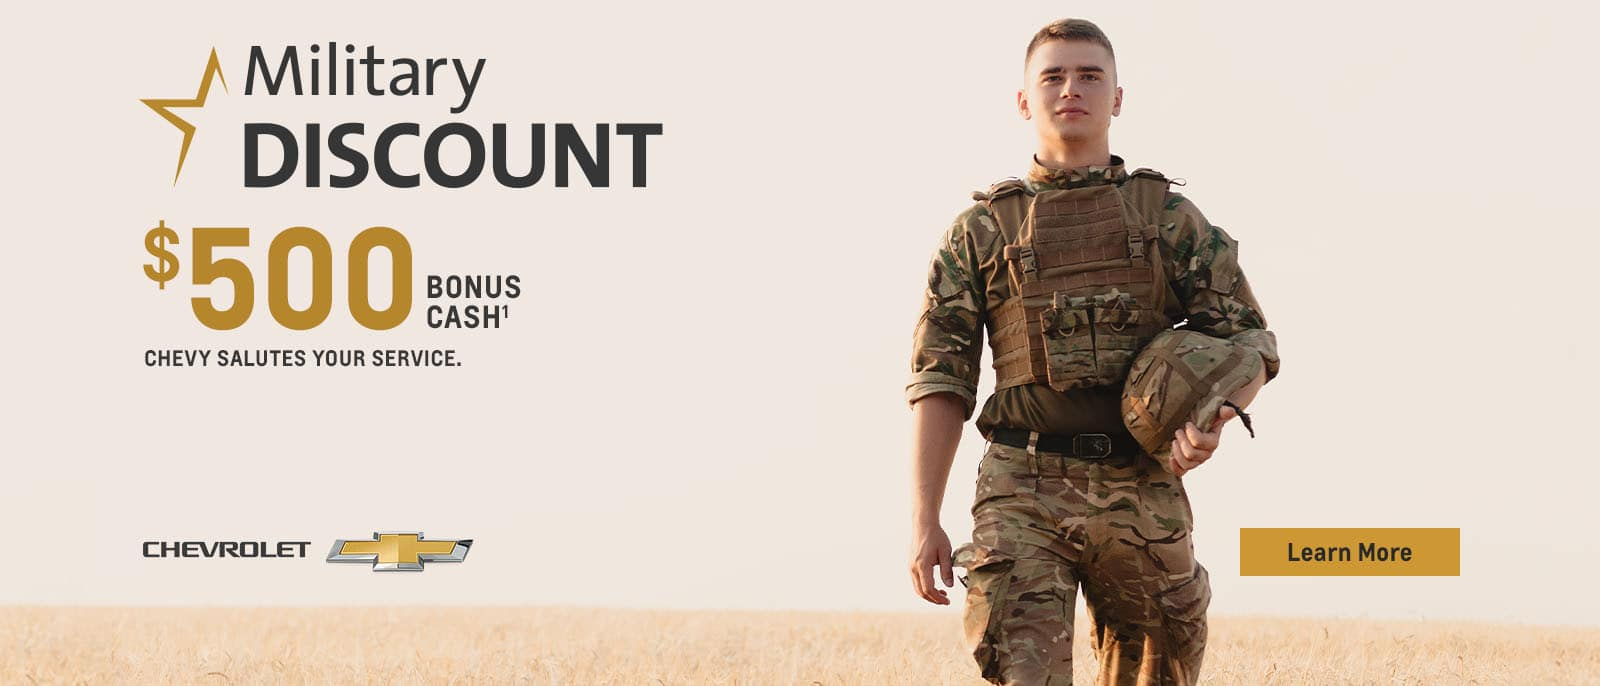 MILITARY DISCOUNT_1600x686 (1)